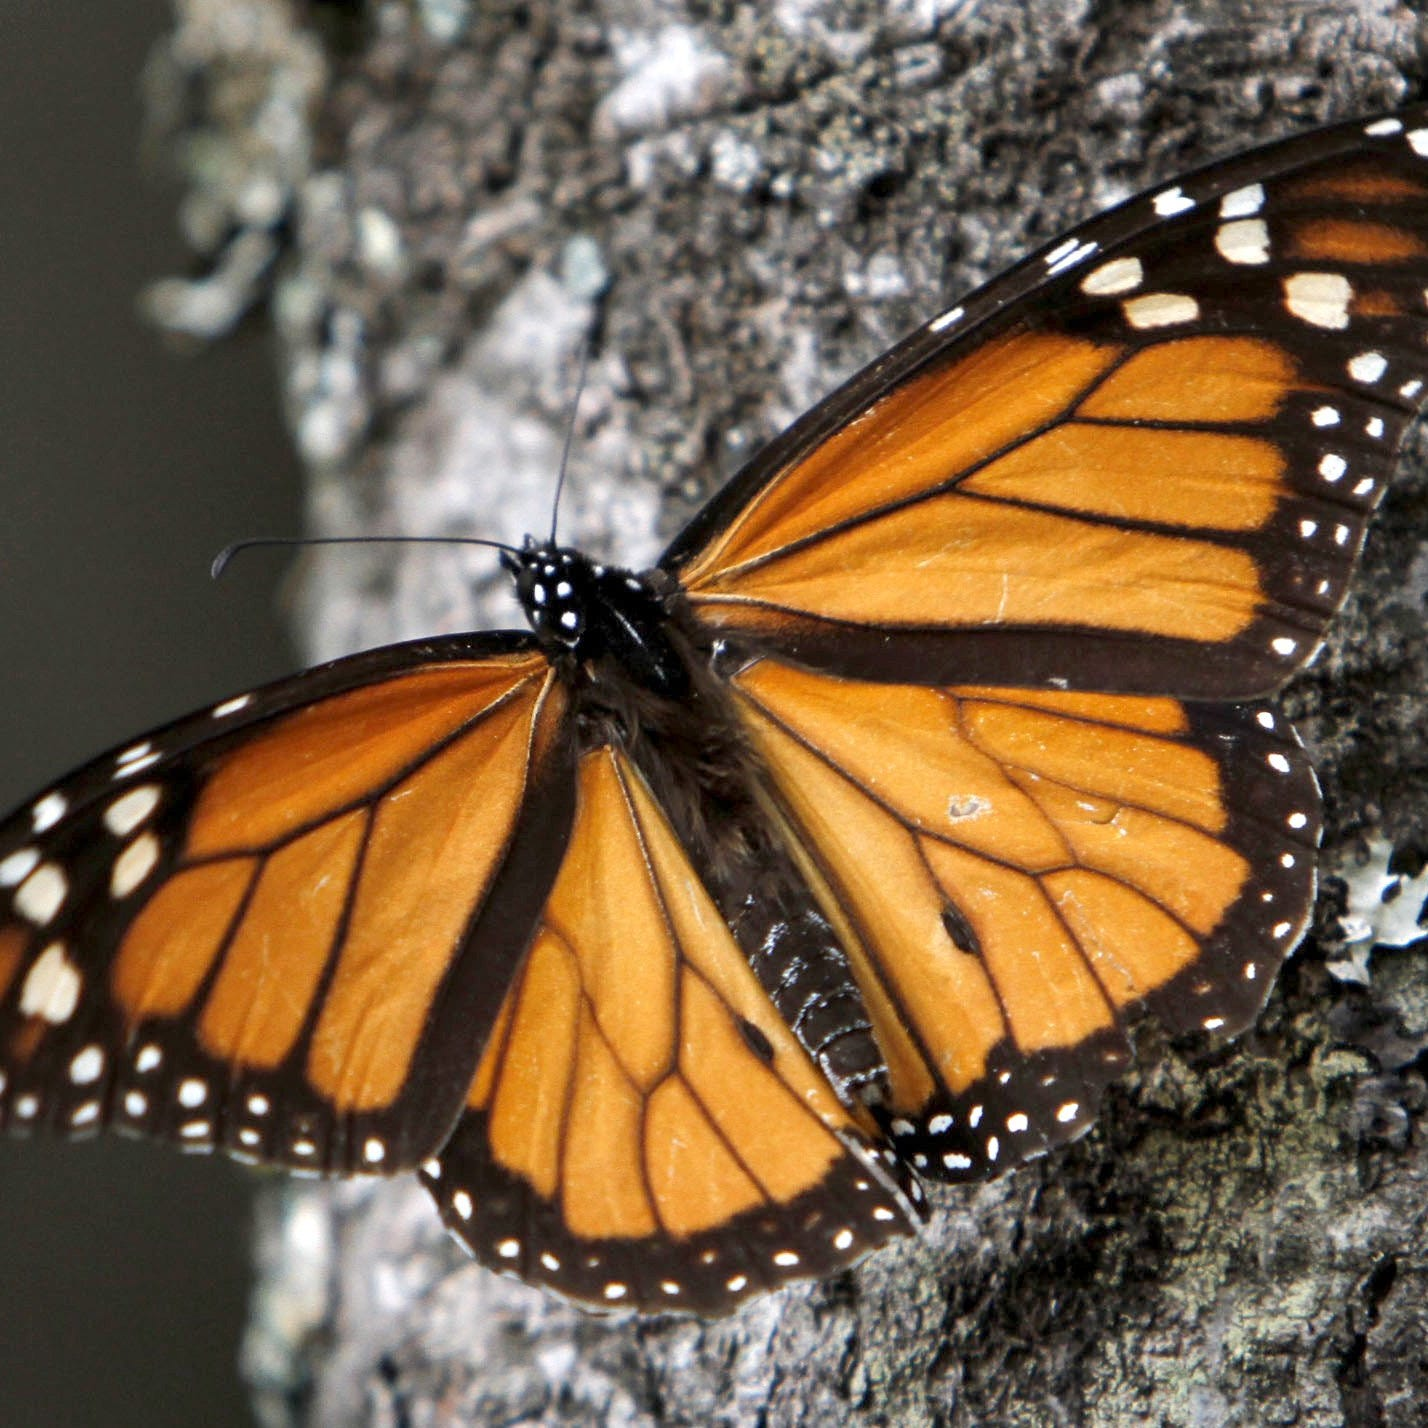 Love Monarch butterflies? Here's new research on how to help species